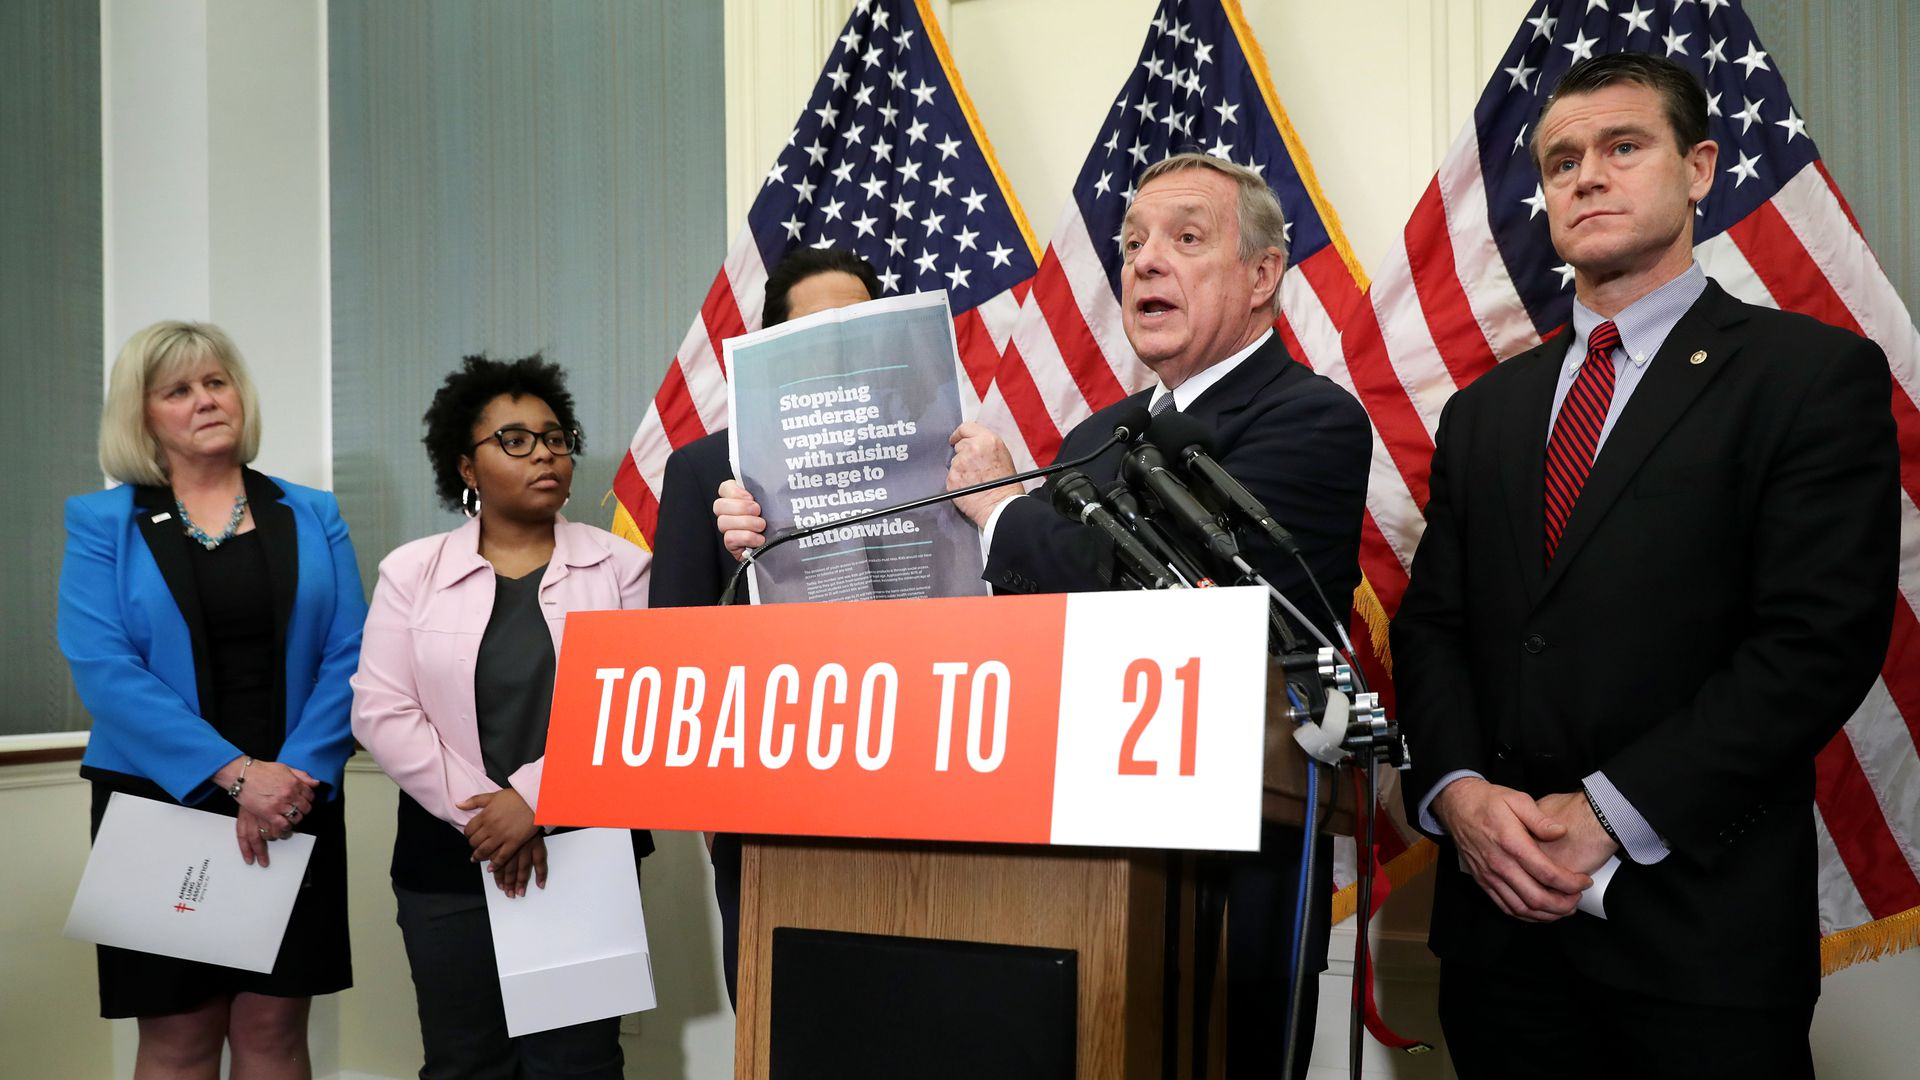 Democratic senator berates FDA commissioner over inaction around e-cigarettes